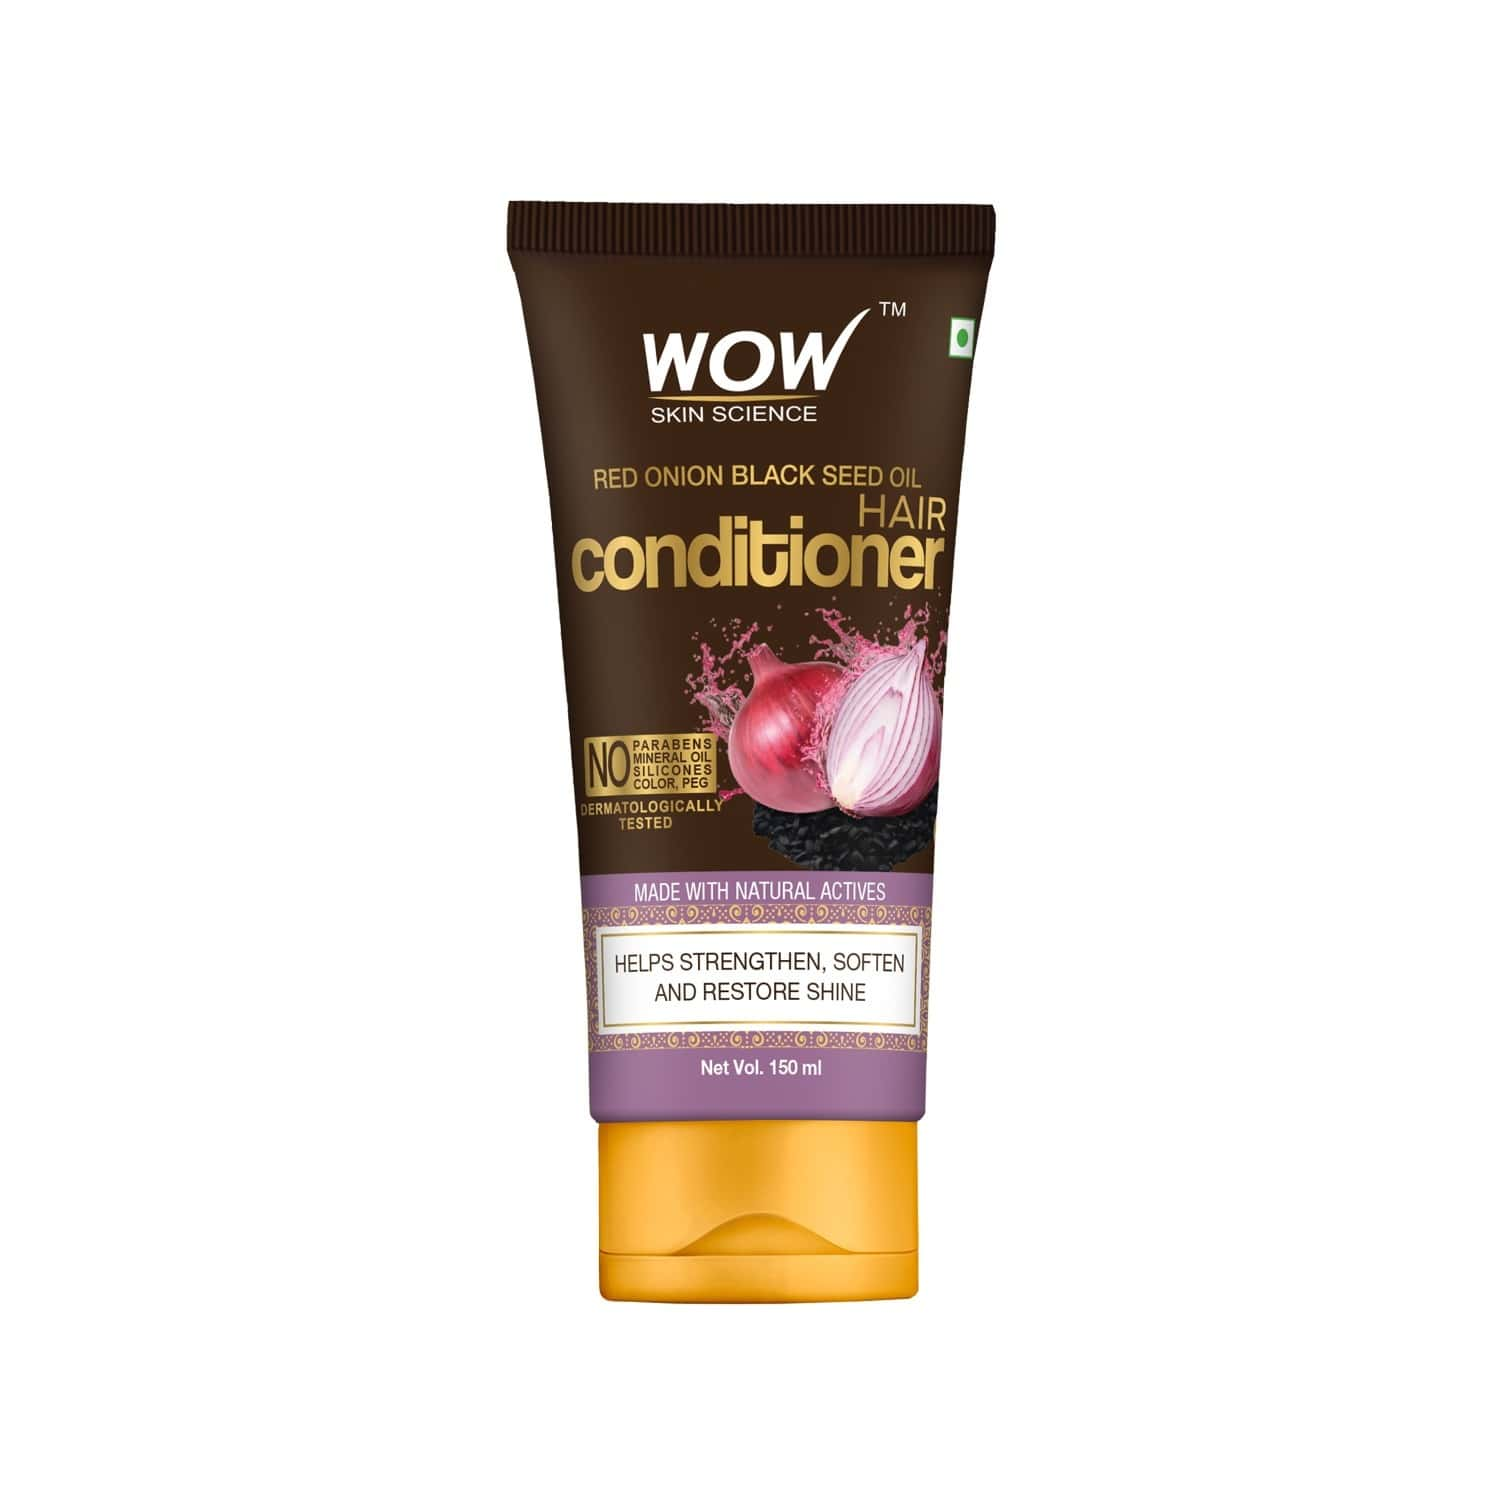 Wow Skin Science Red Onion Black Seed Oil Hair Conditioner  Tube Of 150 Ml